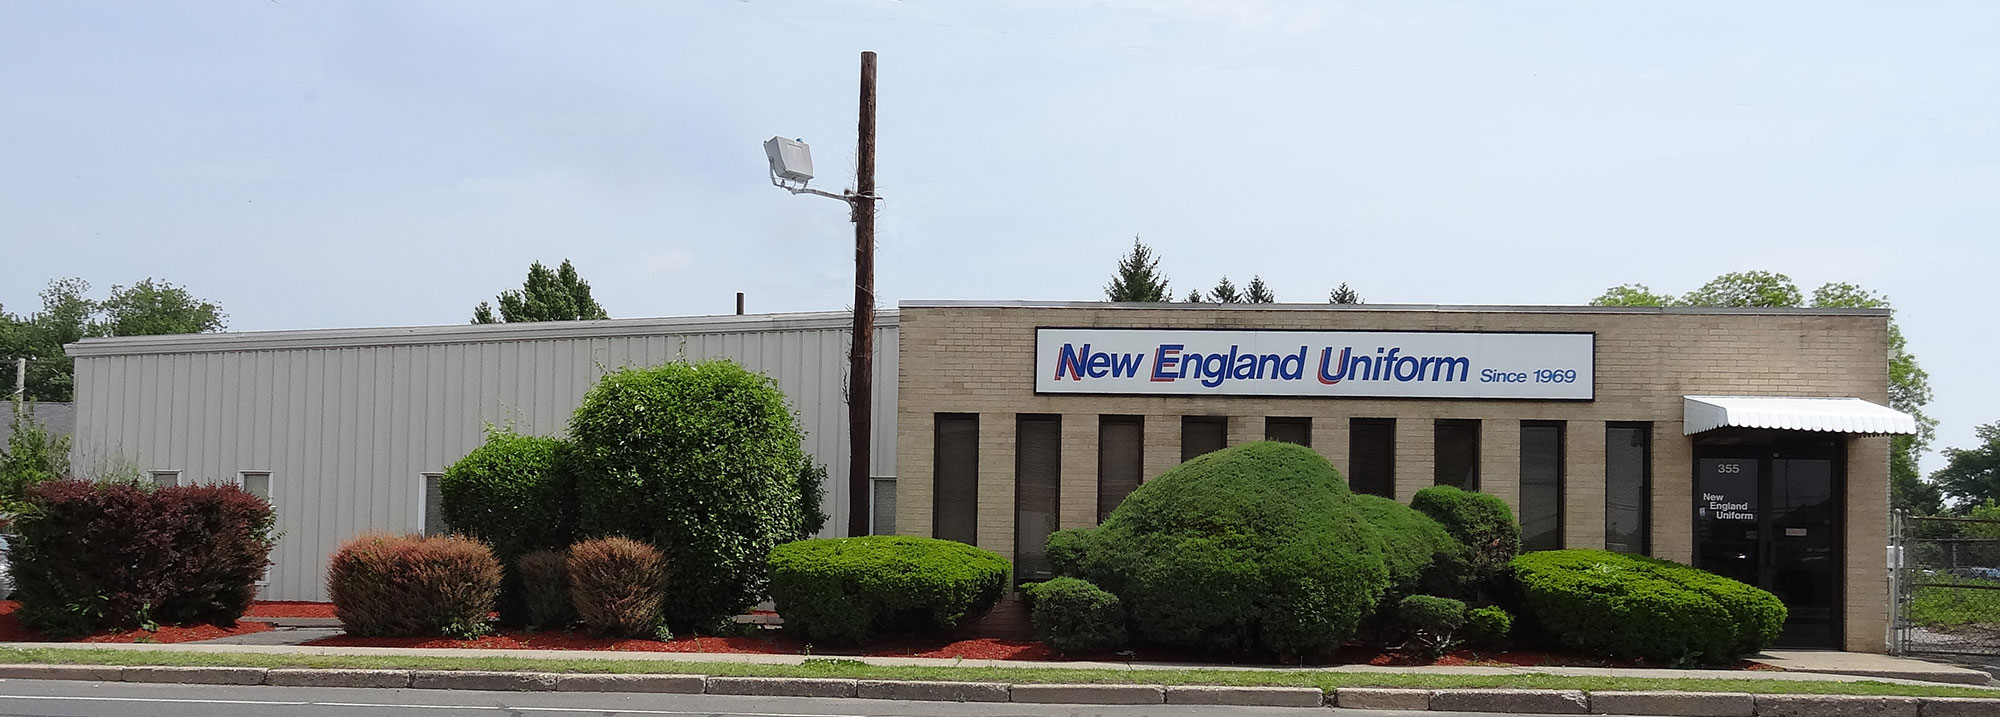 This is a photo from outside New England Uniform's Facility